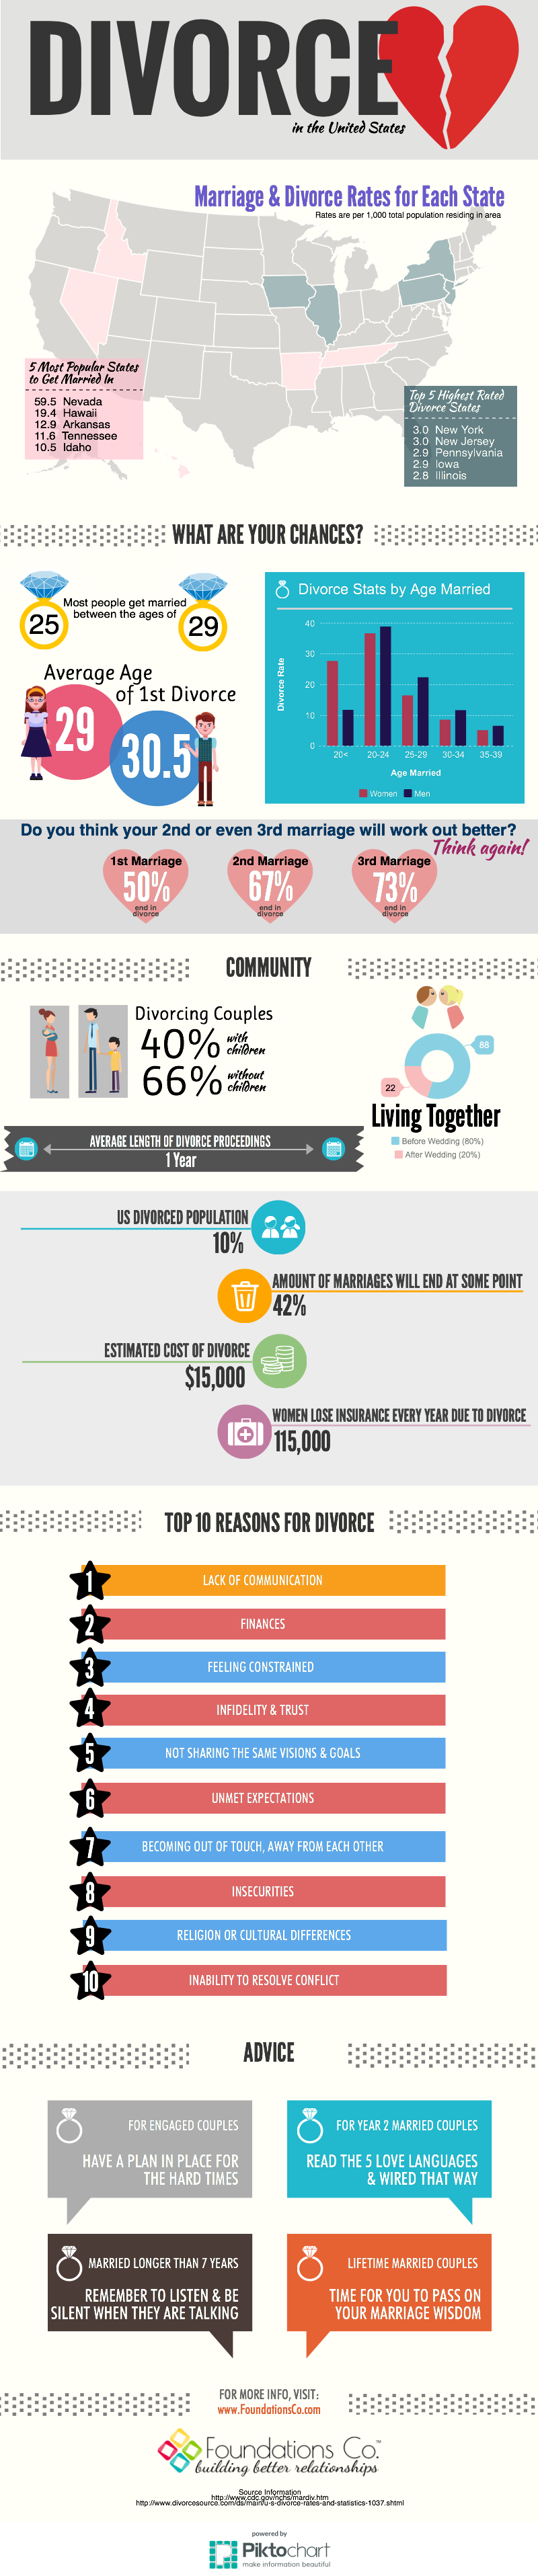 Divorce Rate in United States, relationships, foundations company